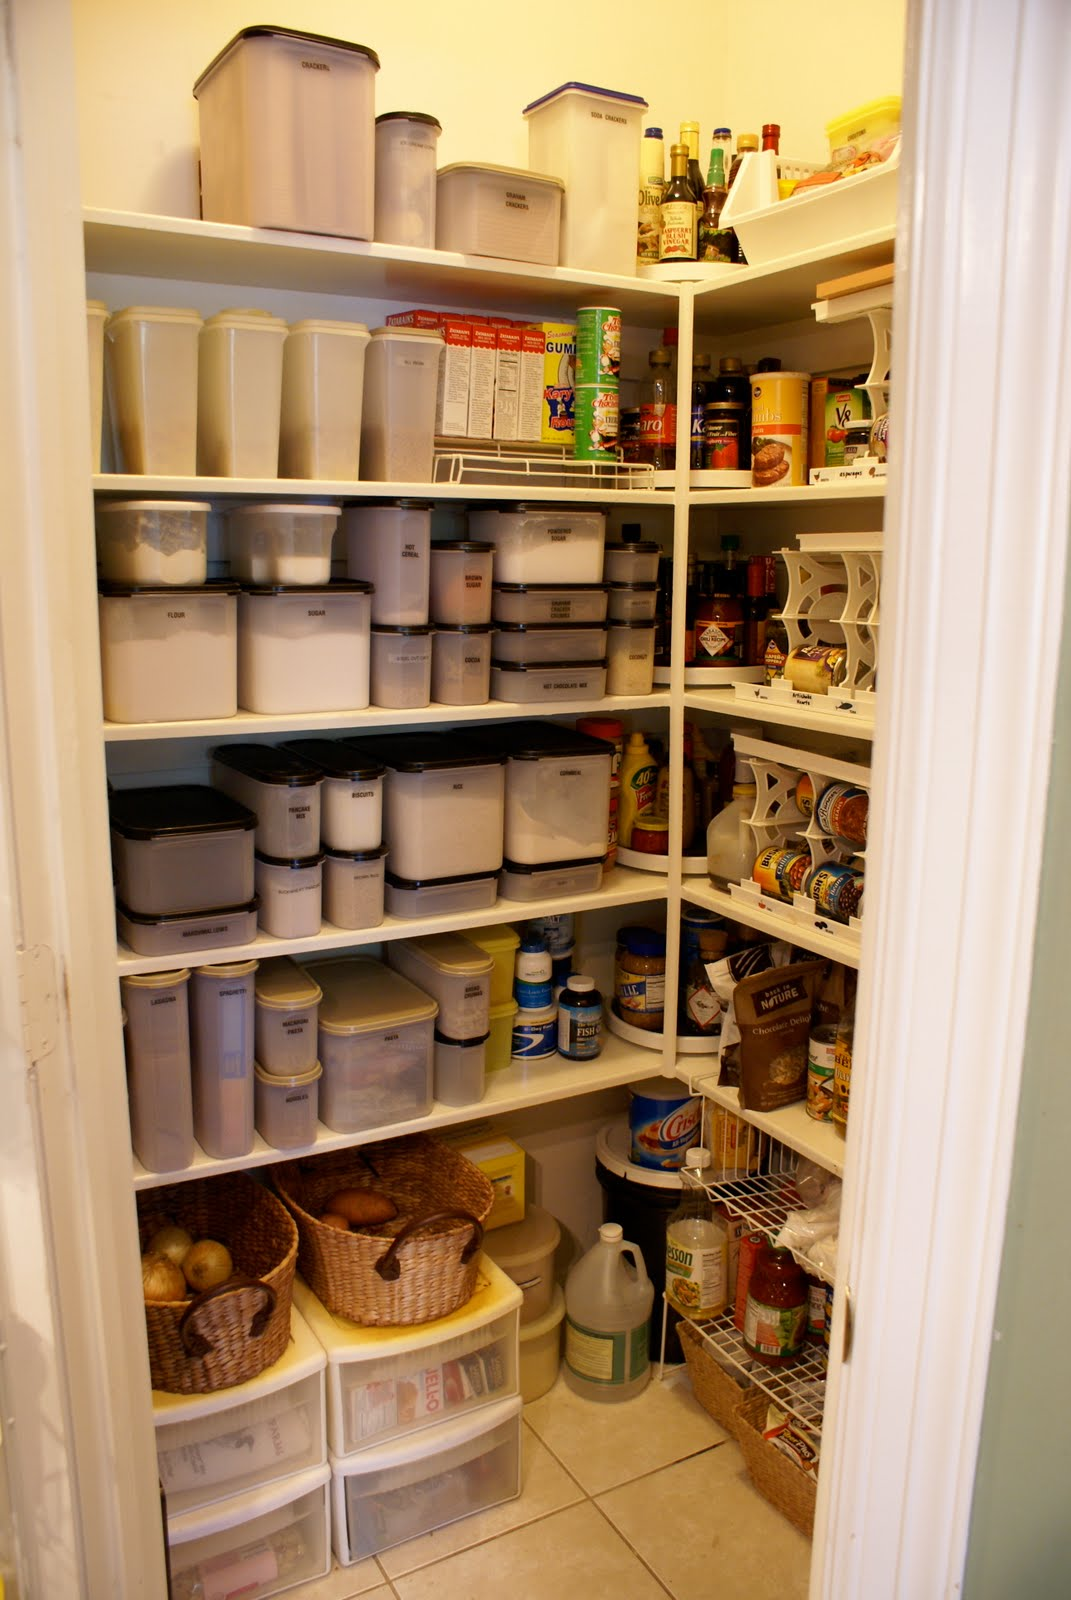 Remarkable Pantry Organization Ideas 1071 x 1600 · 188 kB · jpeg